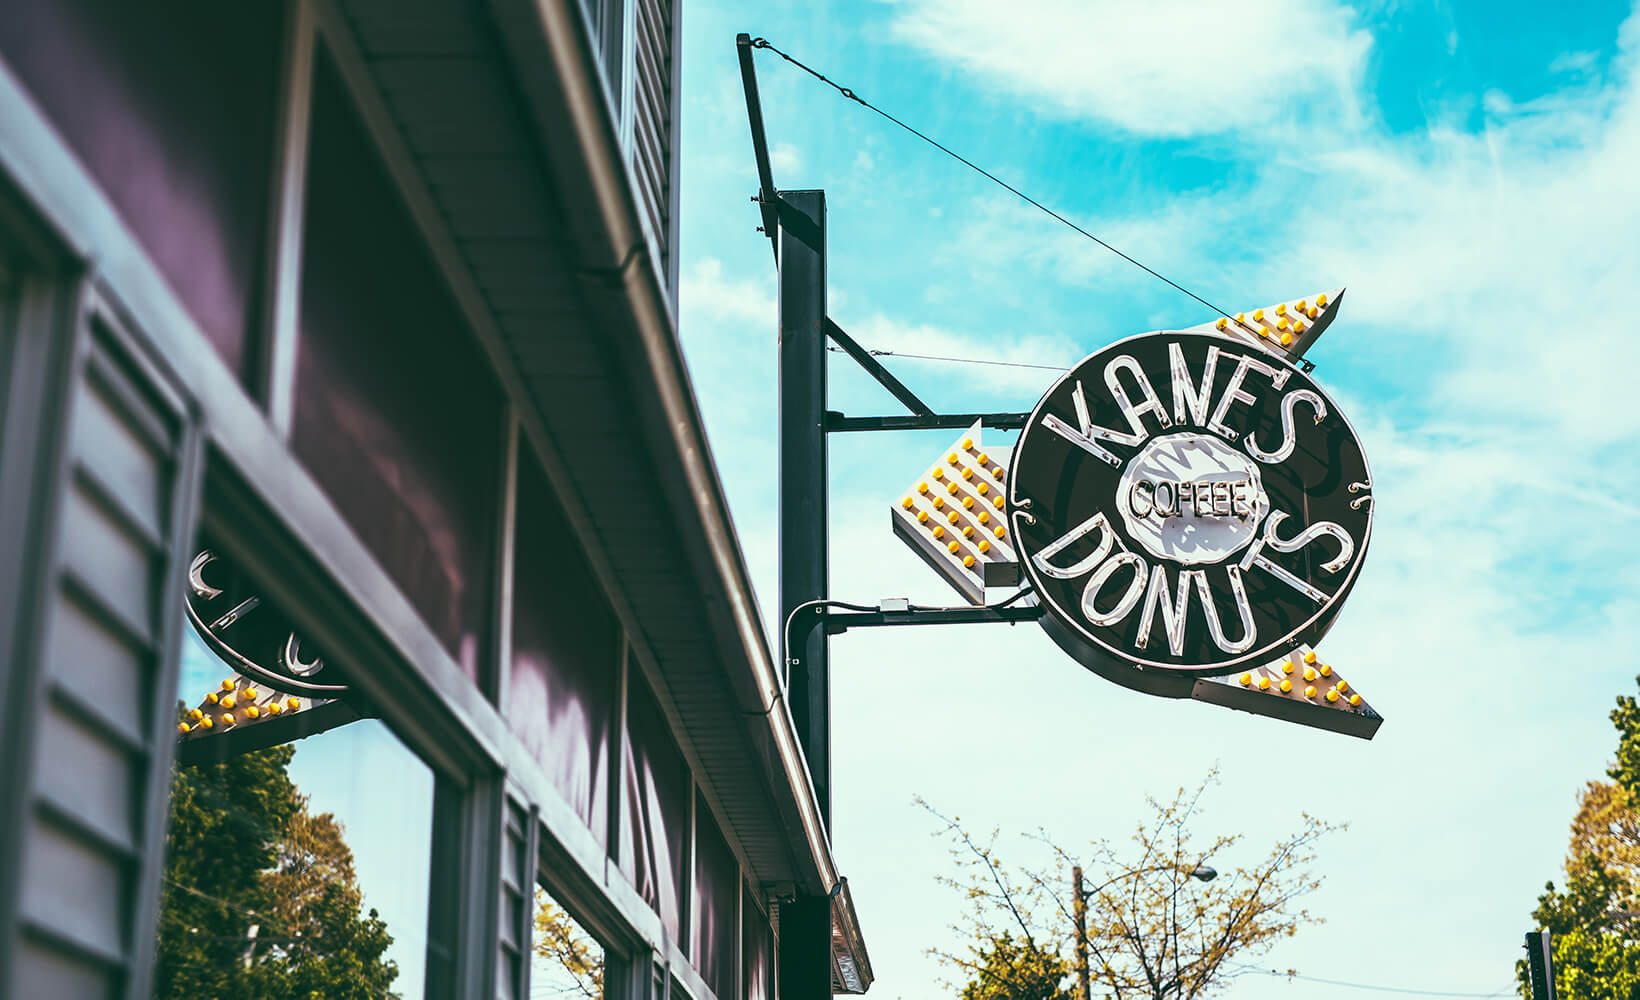 Kane's Donuts Sign